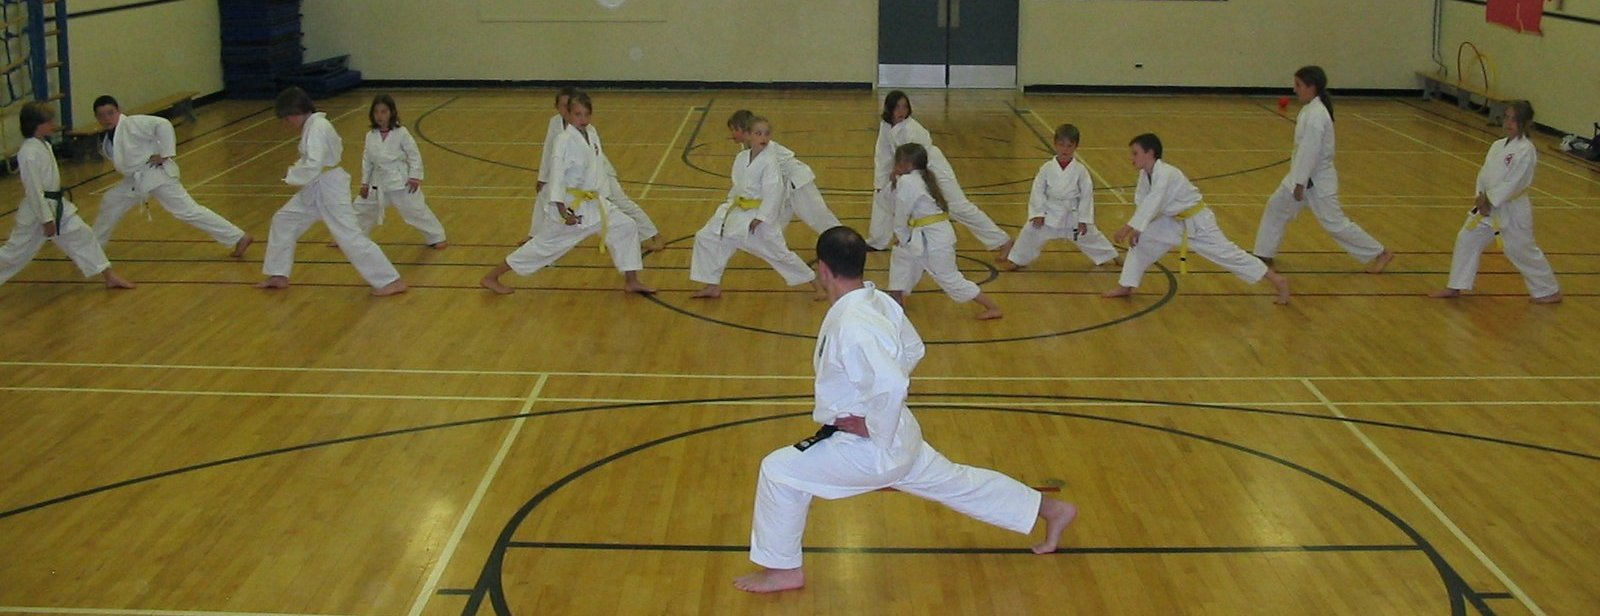 A picture of a karate class